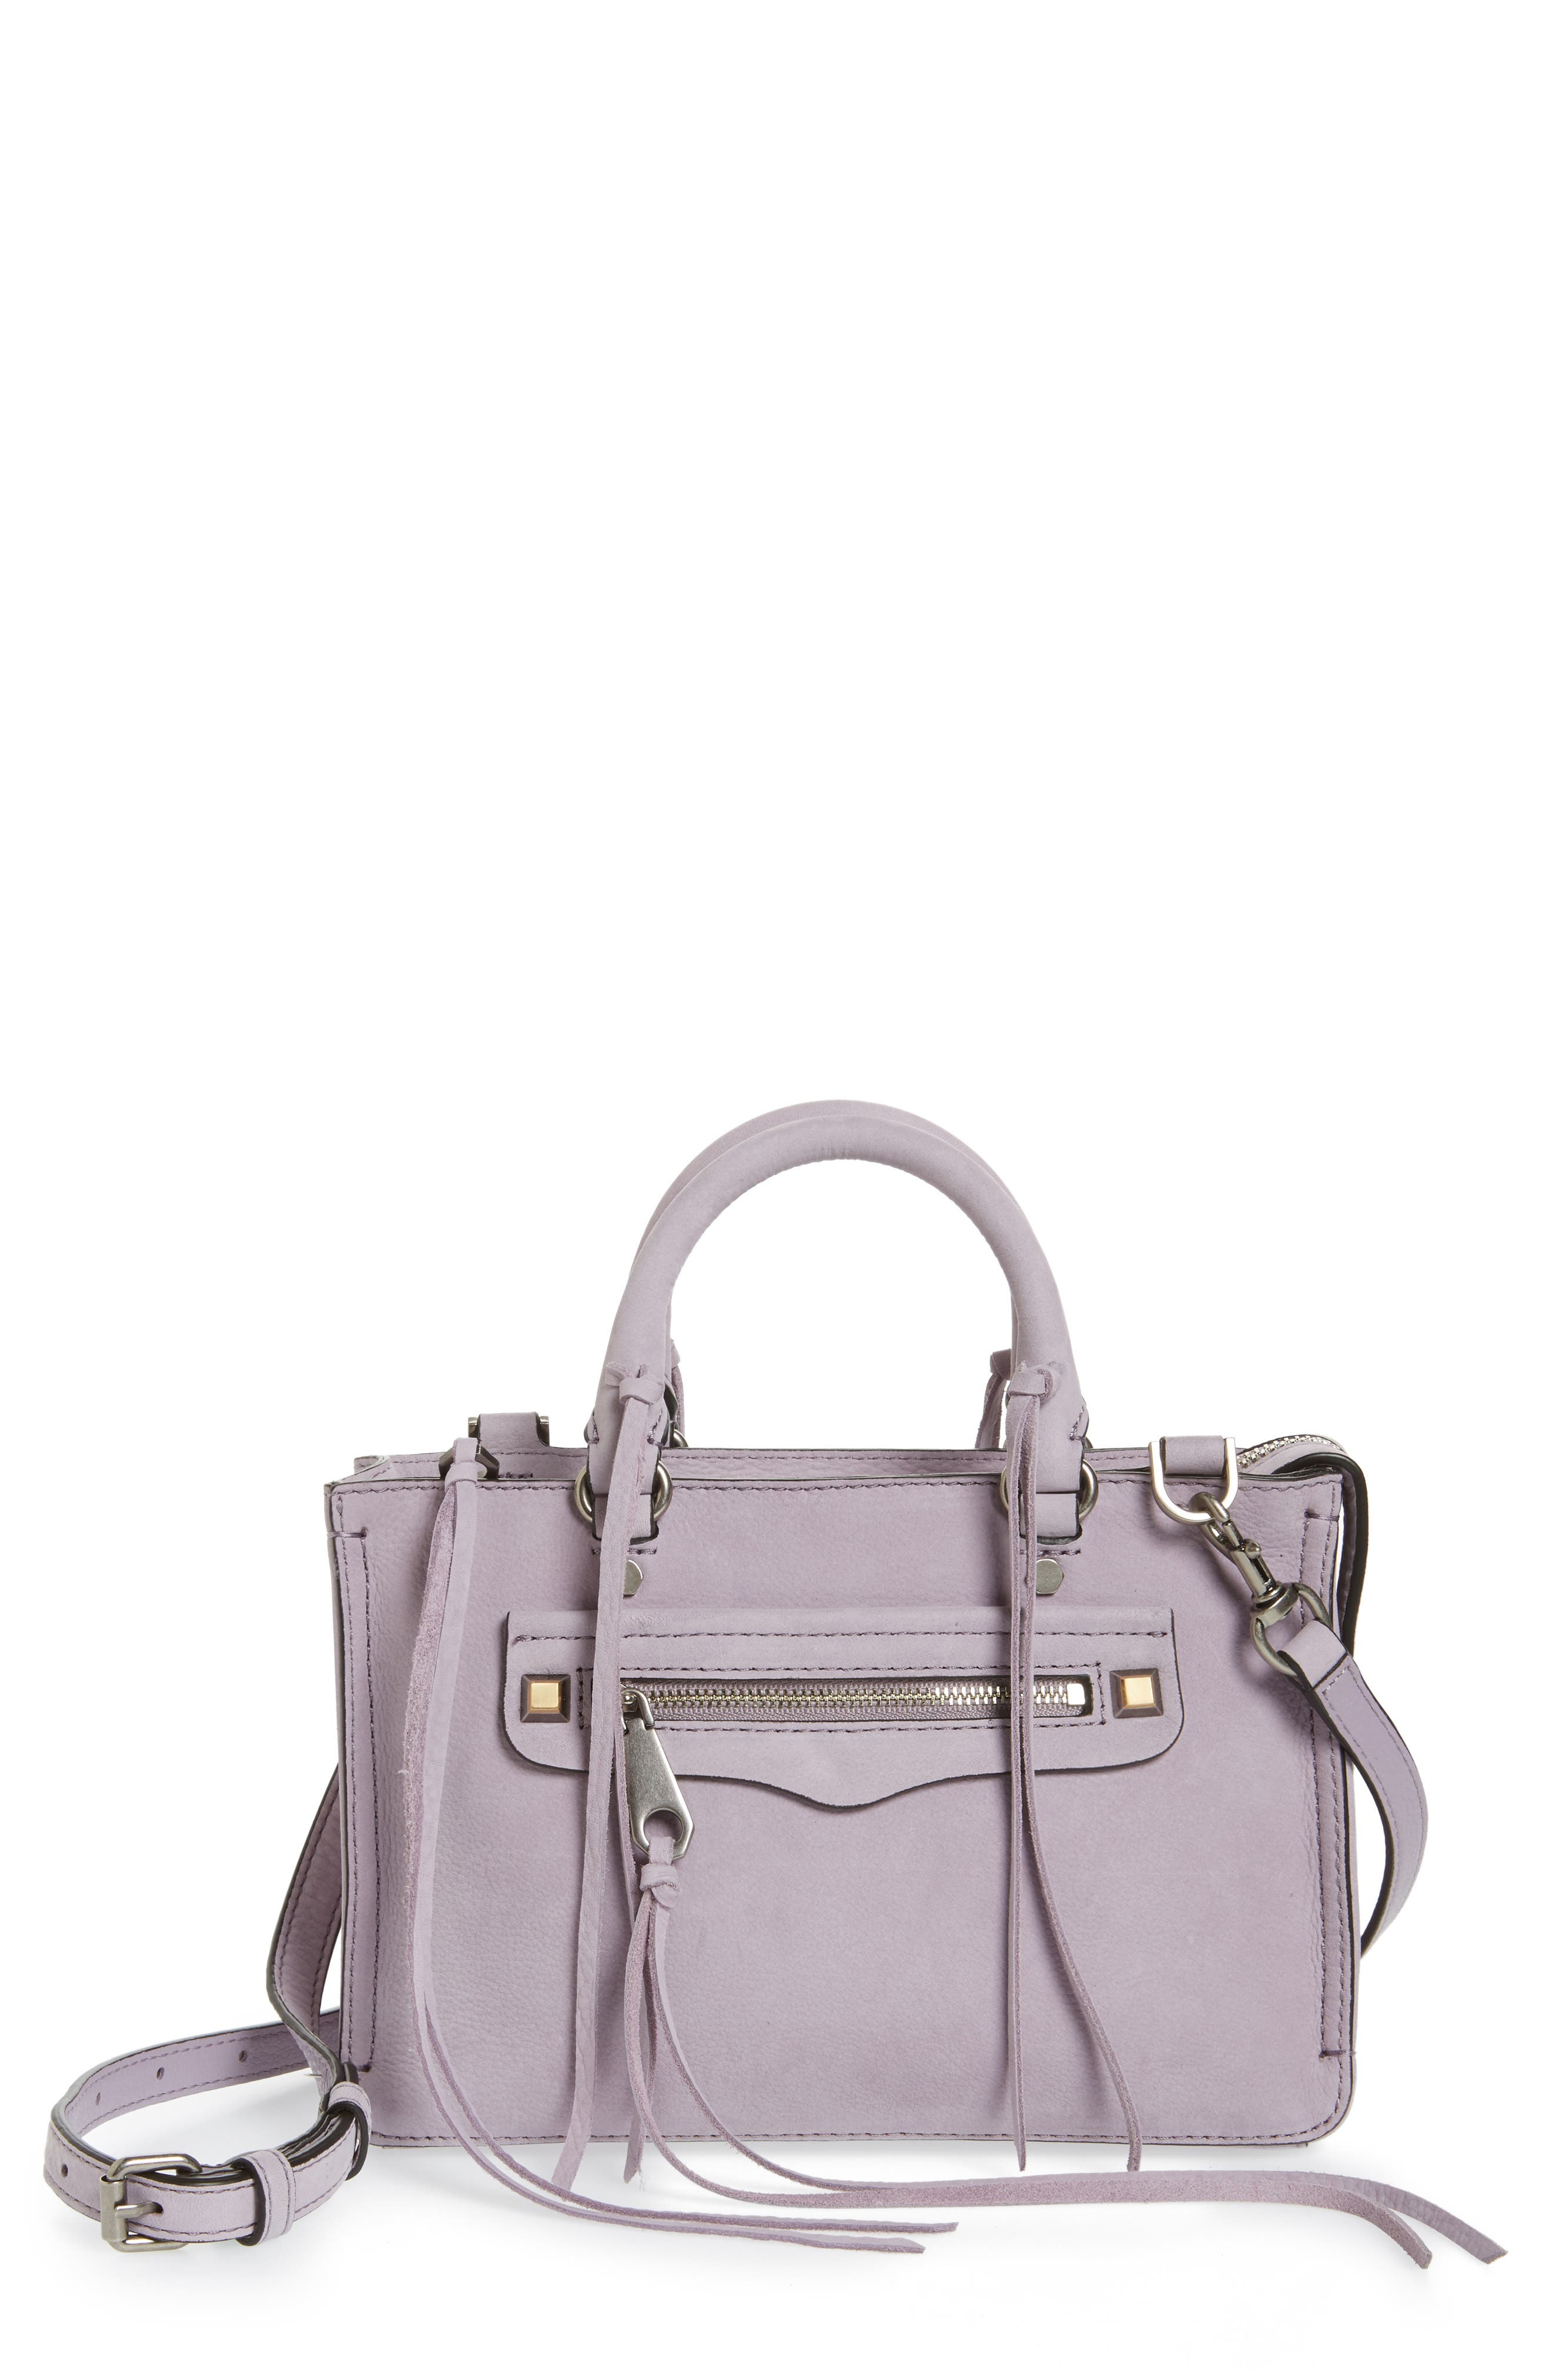 Alternate Image 1 Selected - Rebecca Minkoff Micro Regan Leather Satchel